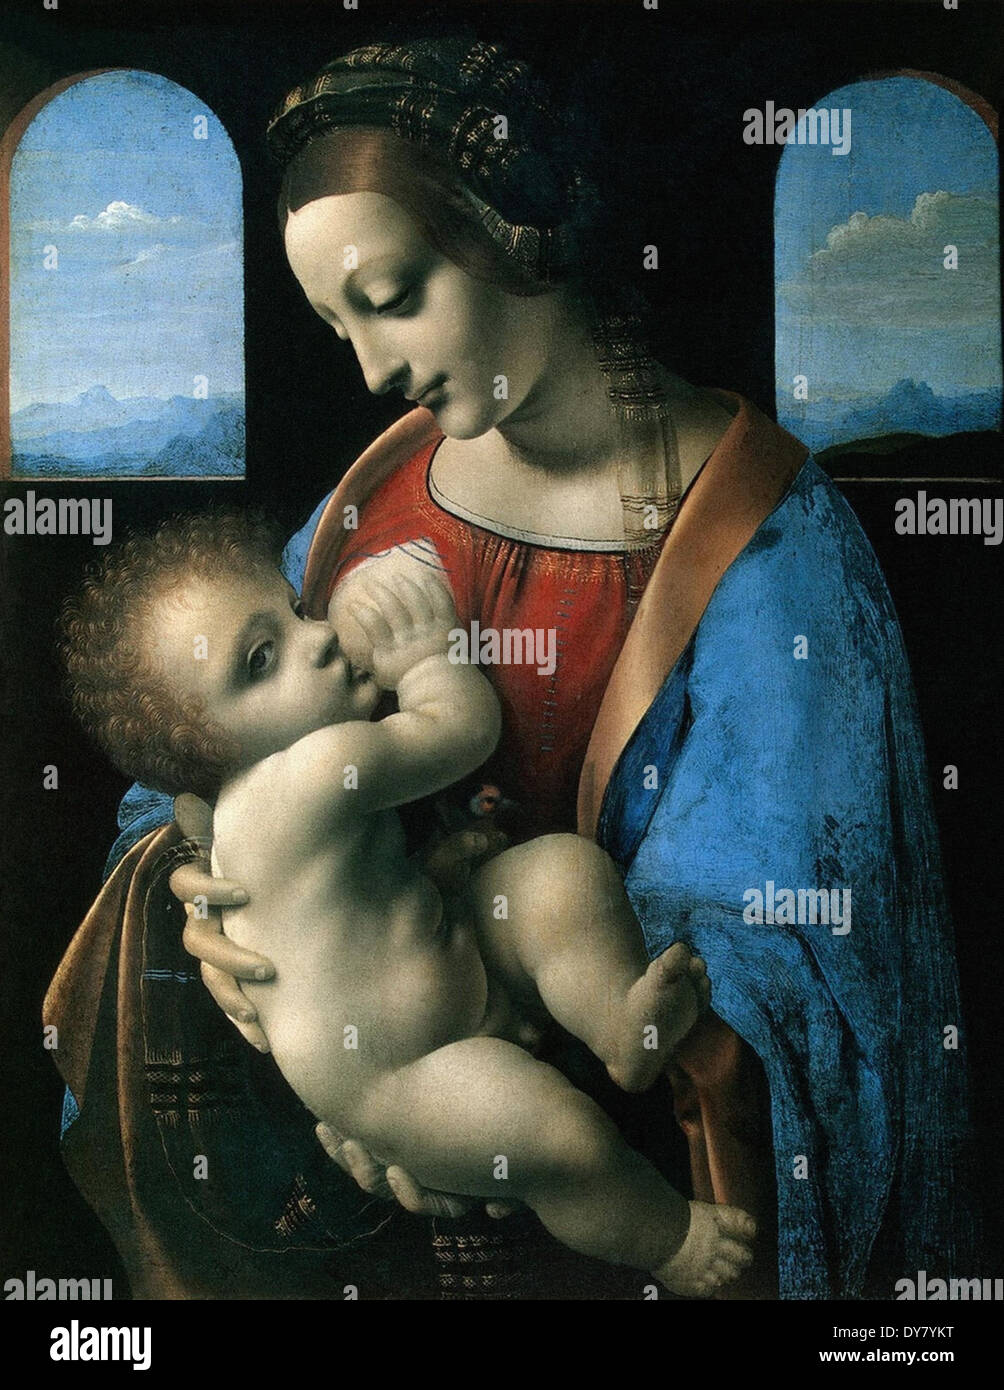 Leonardo da Vinci Madonna and the Child - Stock Image